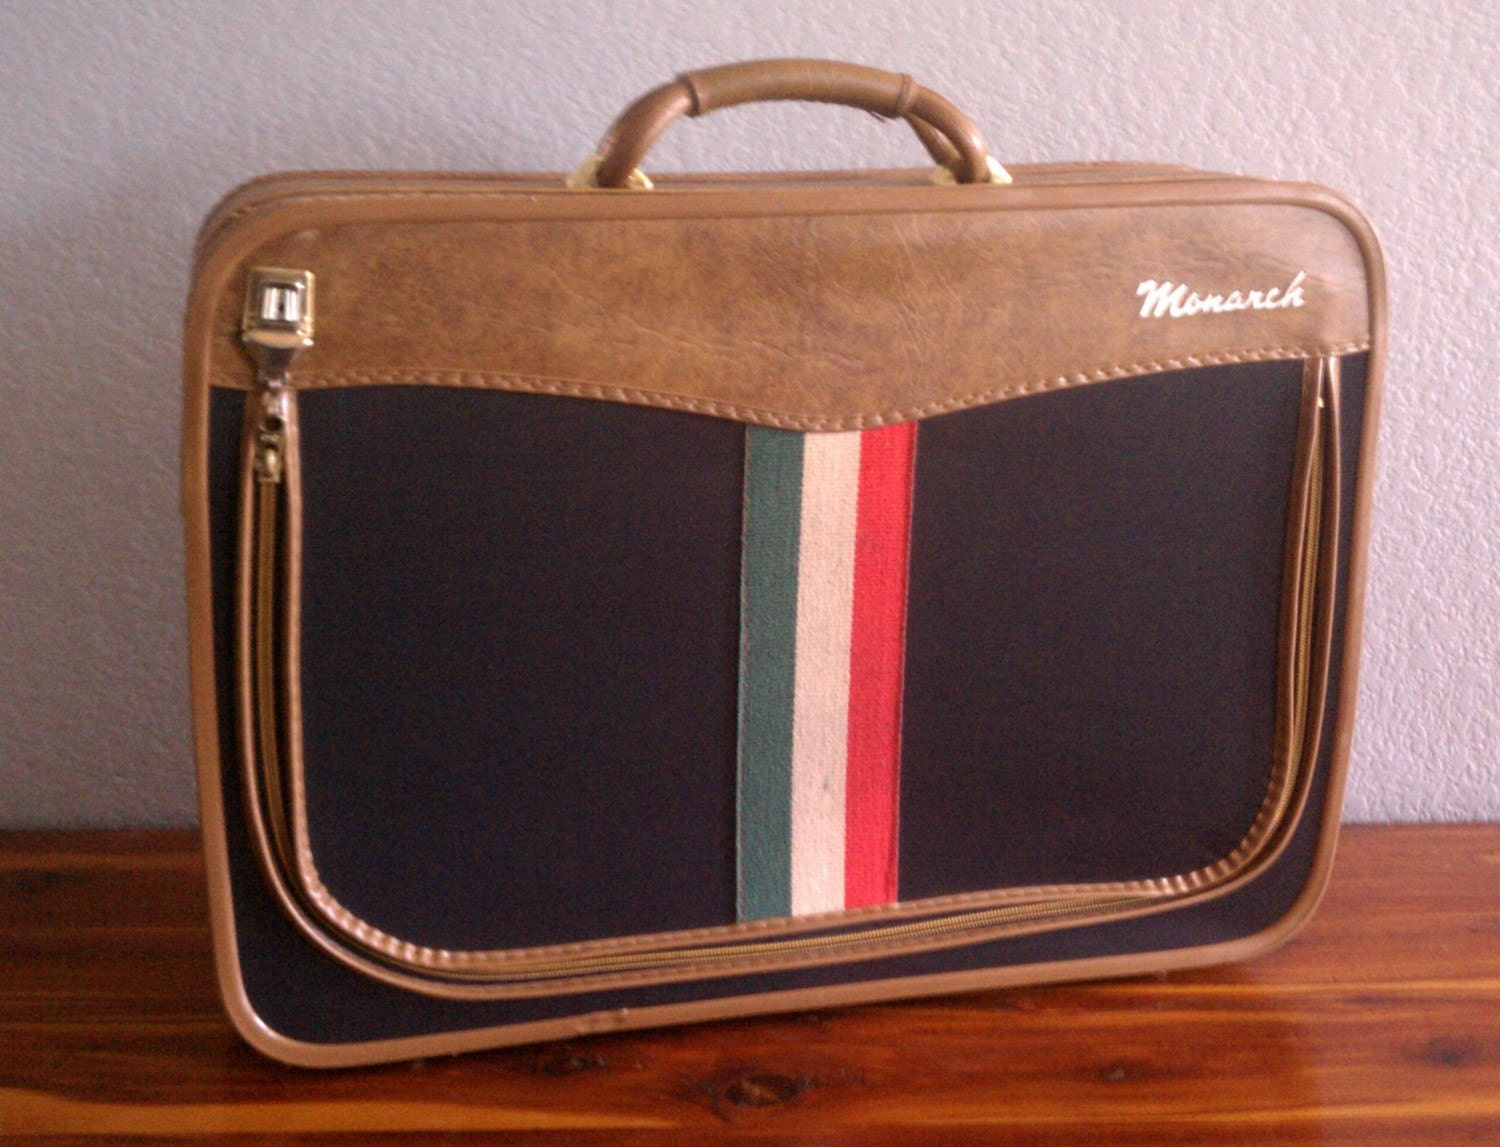 Vintage Monarch Suitcase with Italian Flag and Caramel Leather